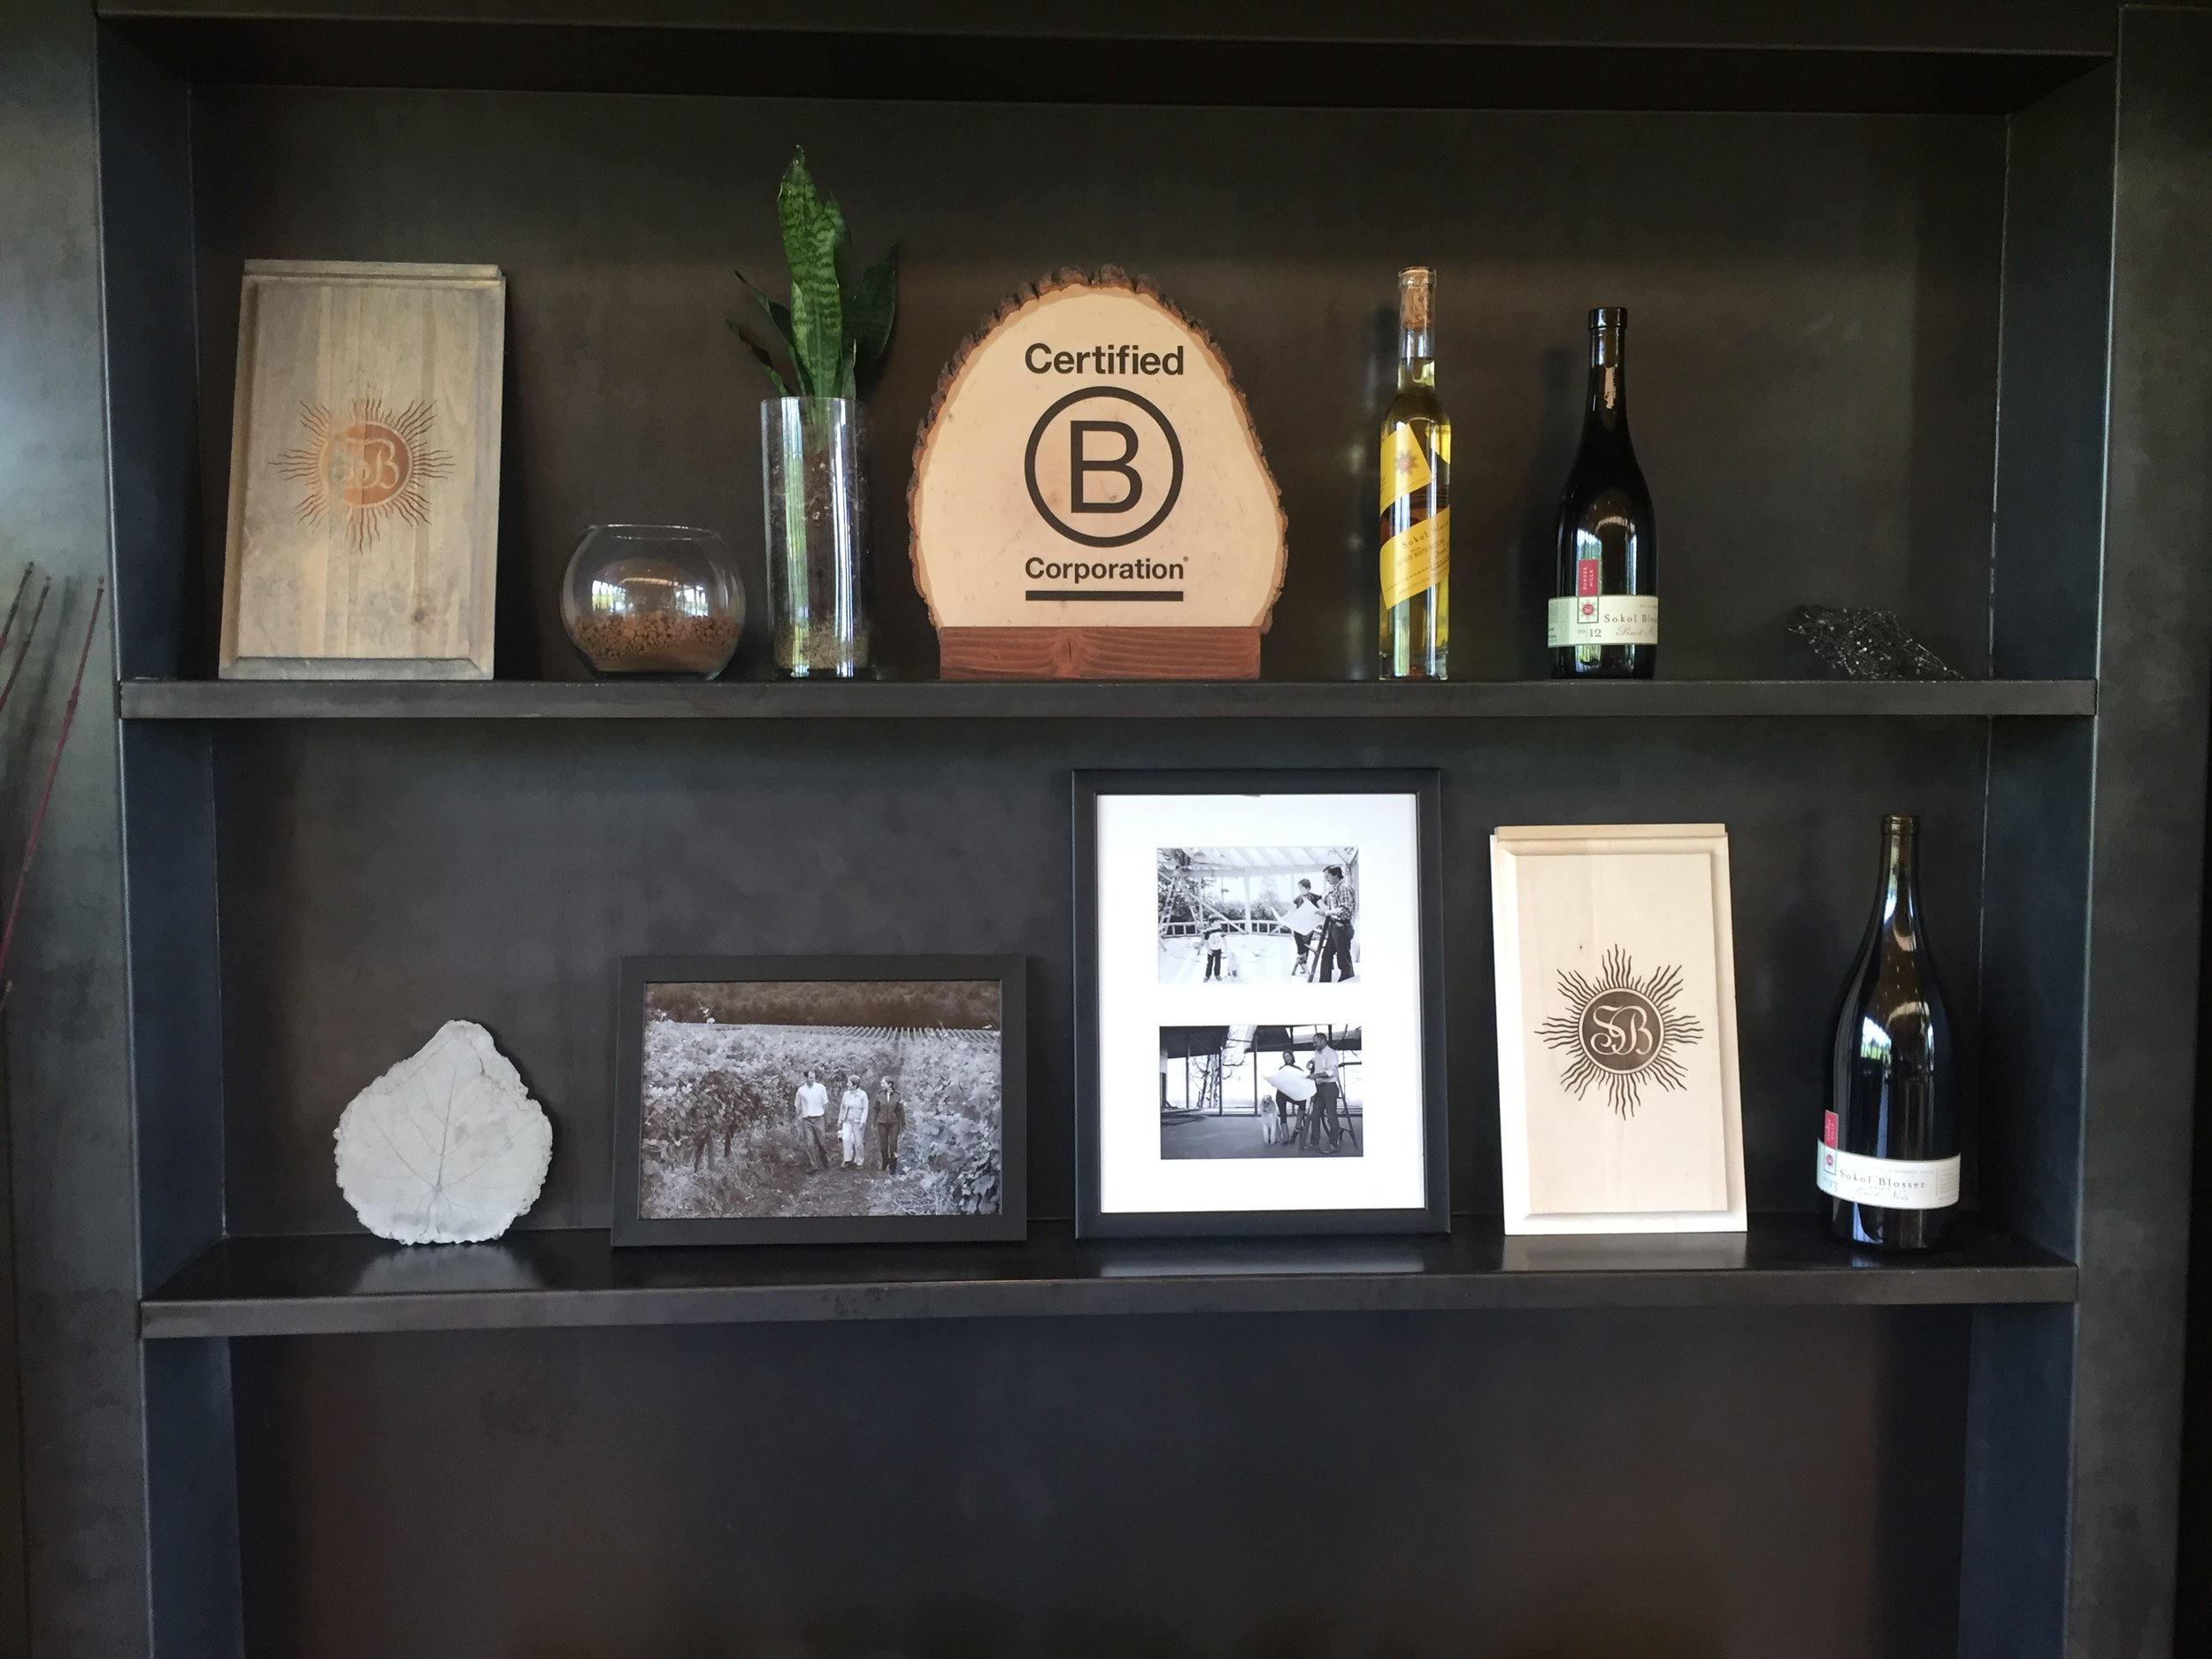 The tasting room at Sokol Blosser, proudly displaying their B Corps credentials.